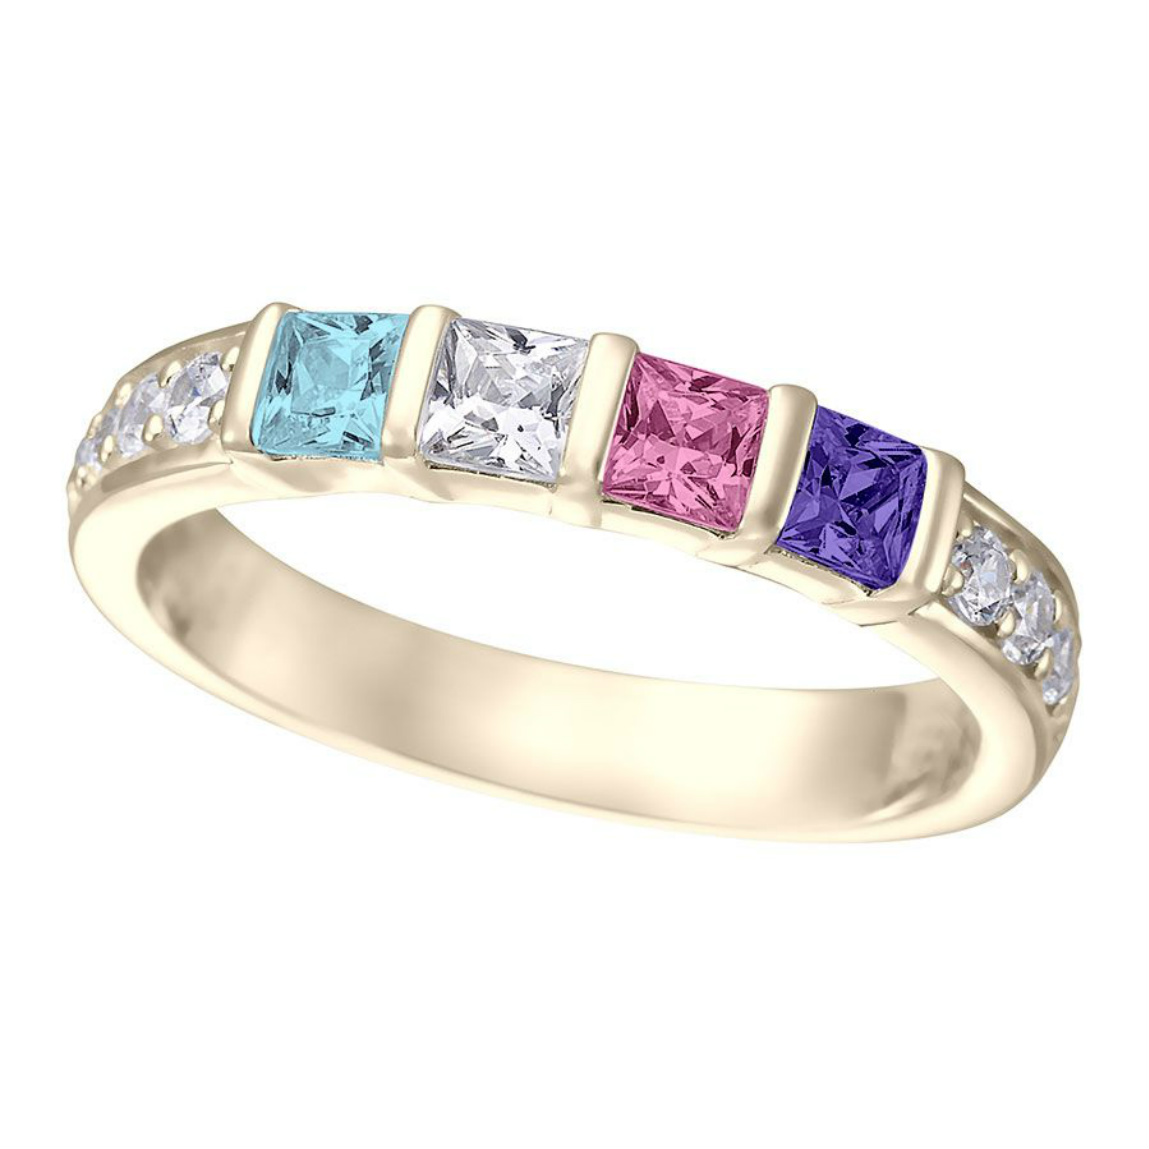 Silver Birthstone Rings For Mothers